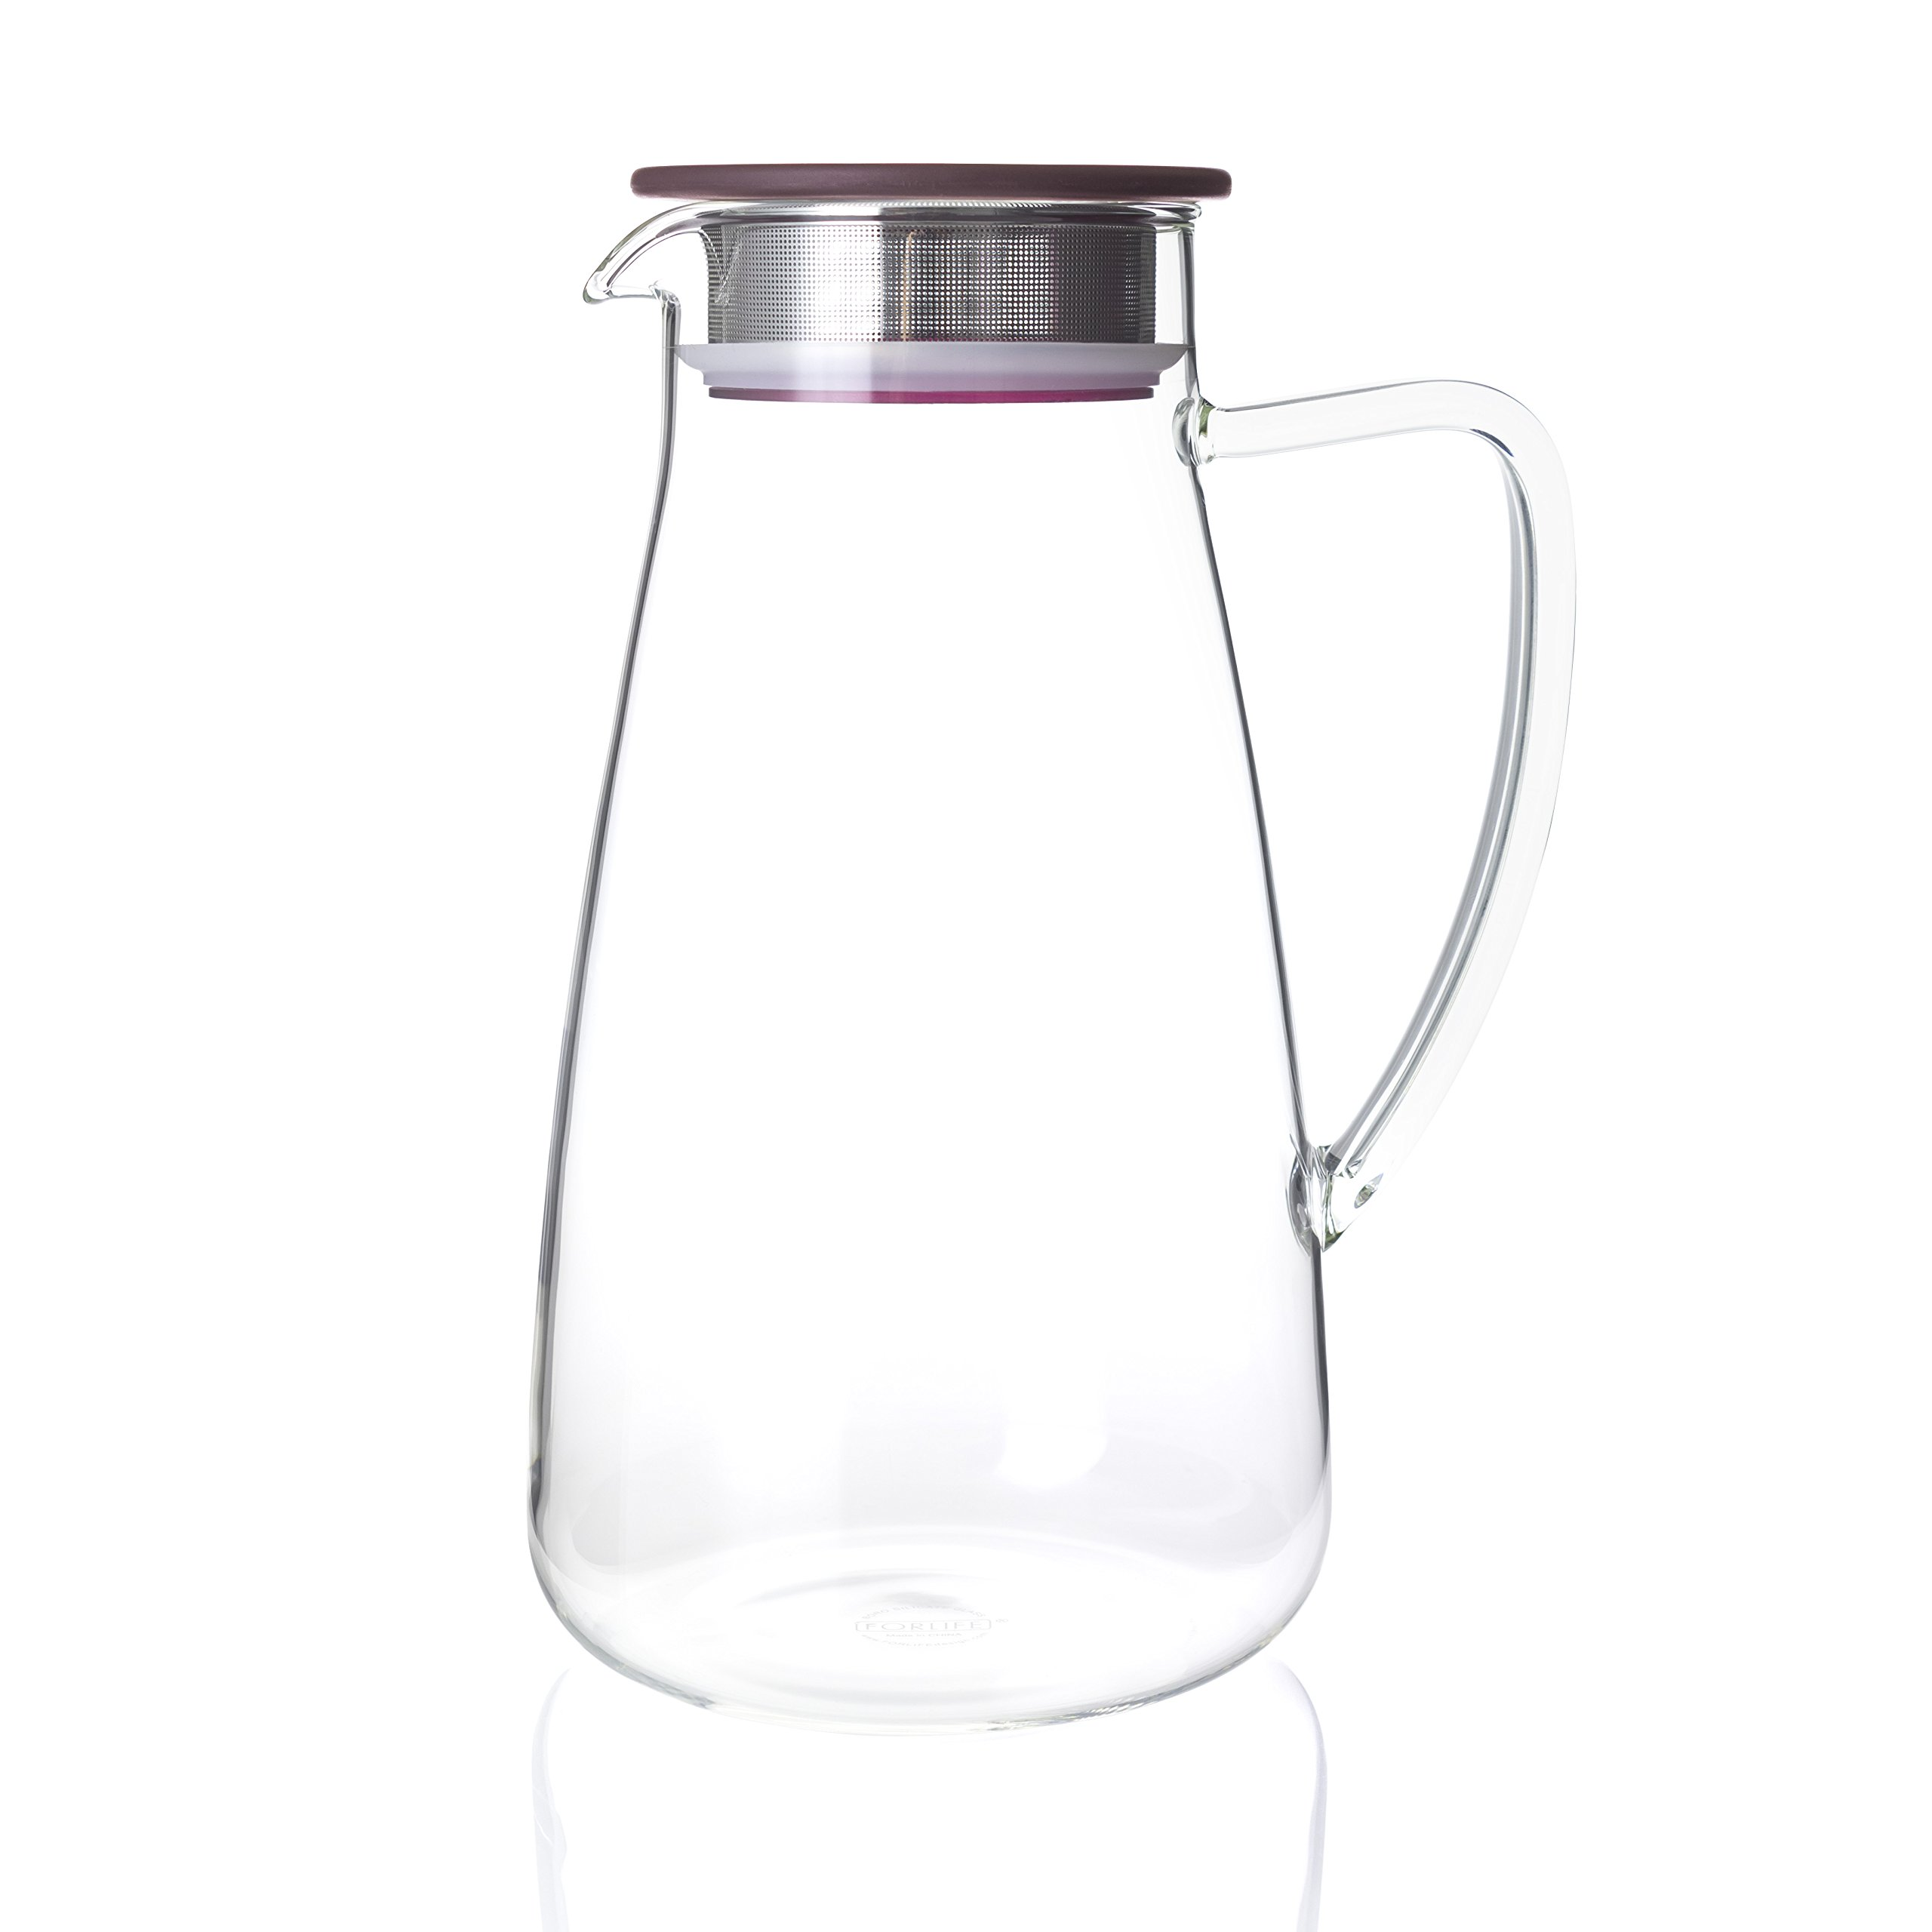 FORLIFE 838-A-CRB Flask Glass Iced Tea Jug Pitcher, 64 oz, Cranberry